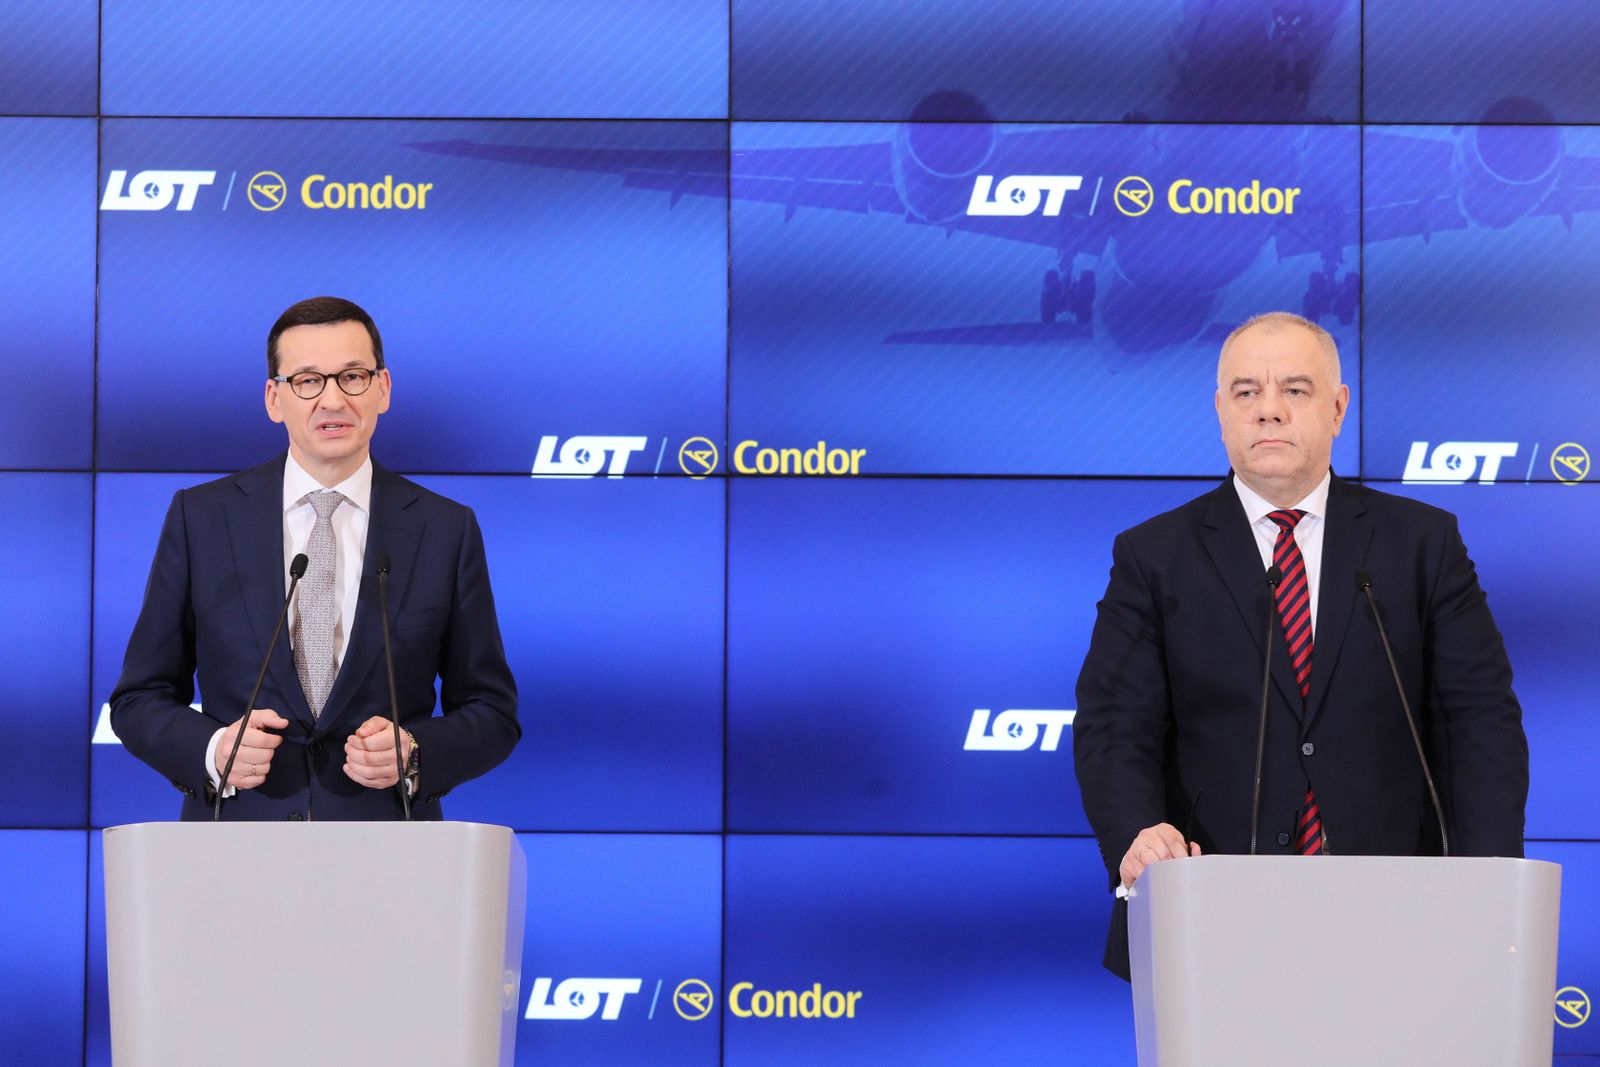 PLL LOT is to take over German airline Condor Air, Warsaw, Poland - 24 Jan 2020